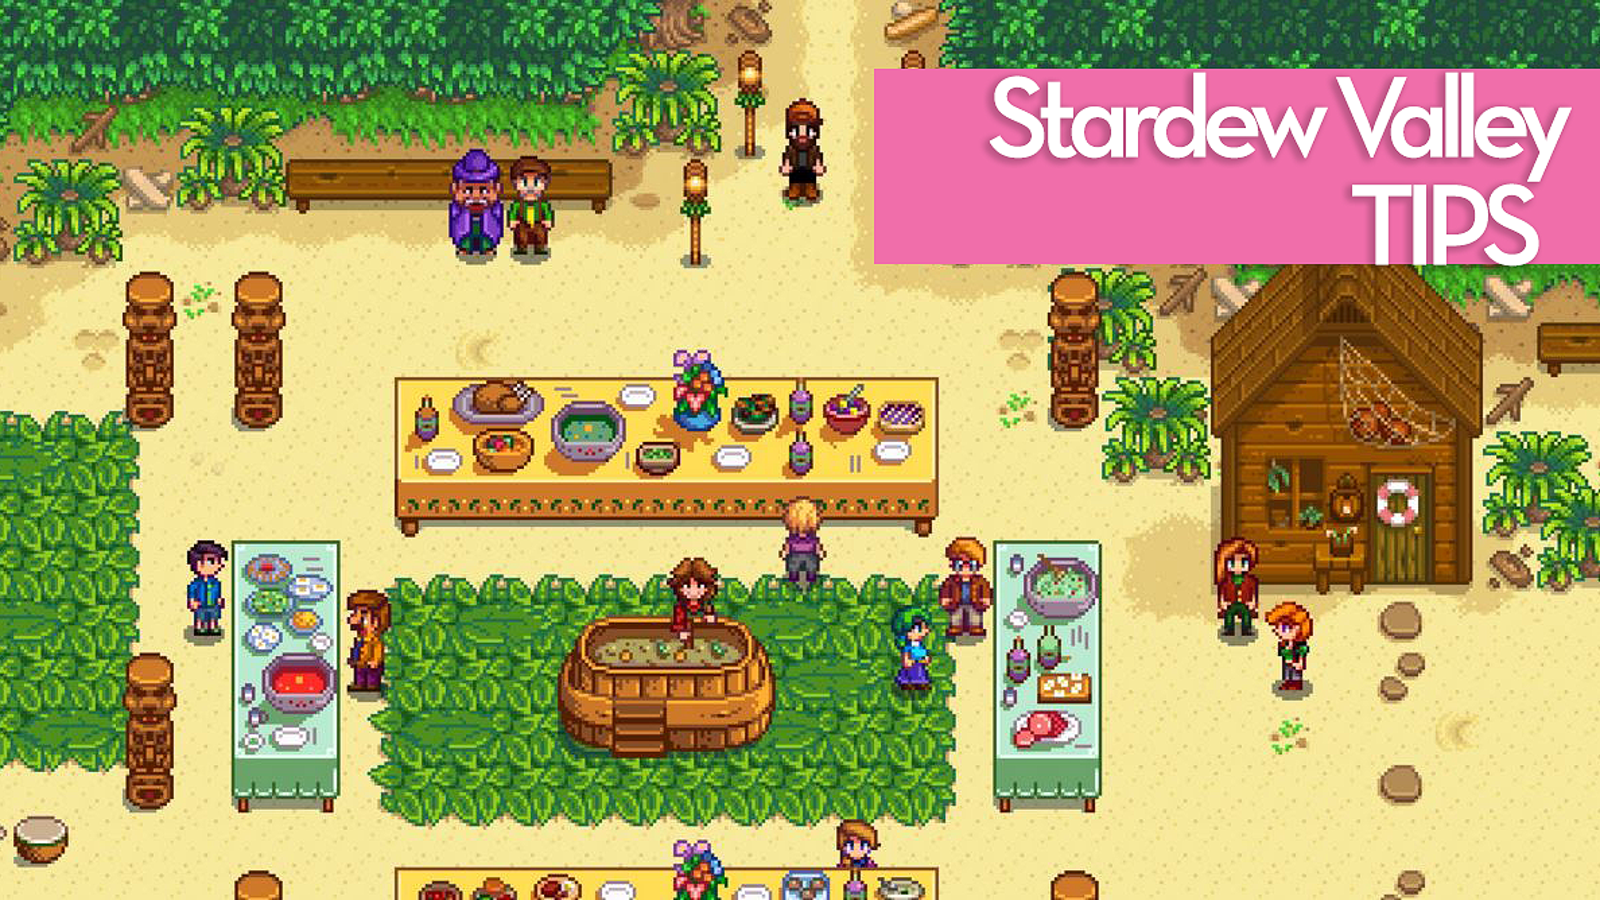 Tips For Playing Stardew Valley [Updated!]